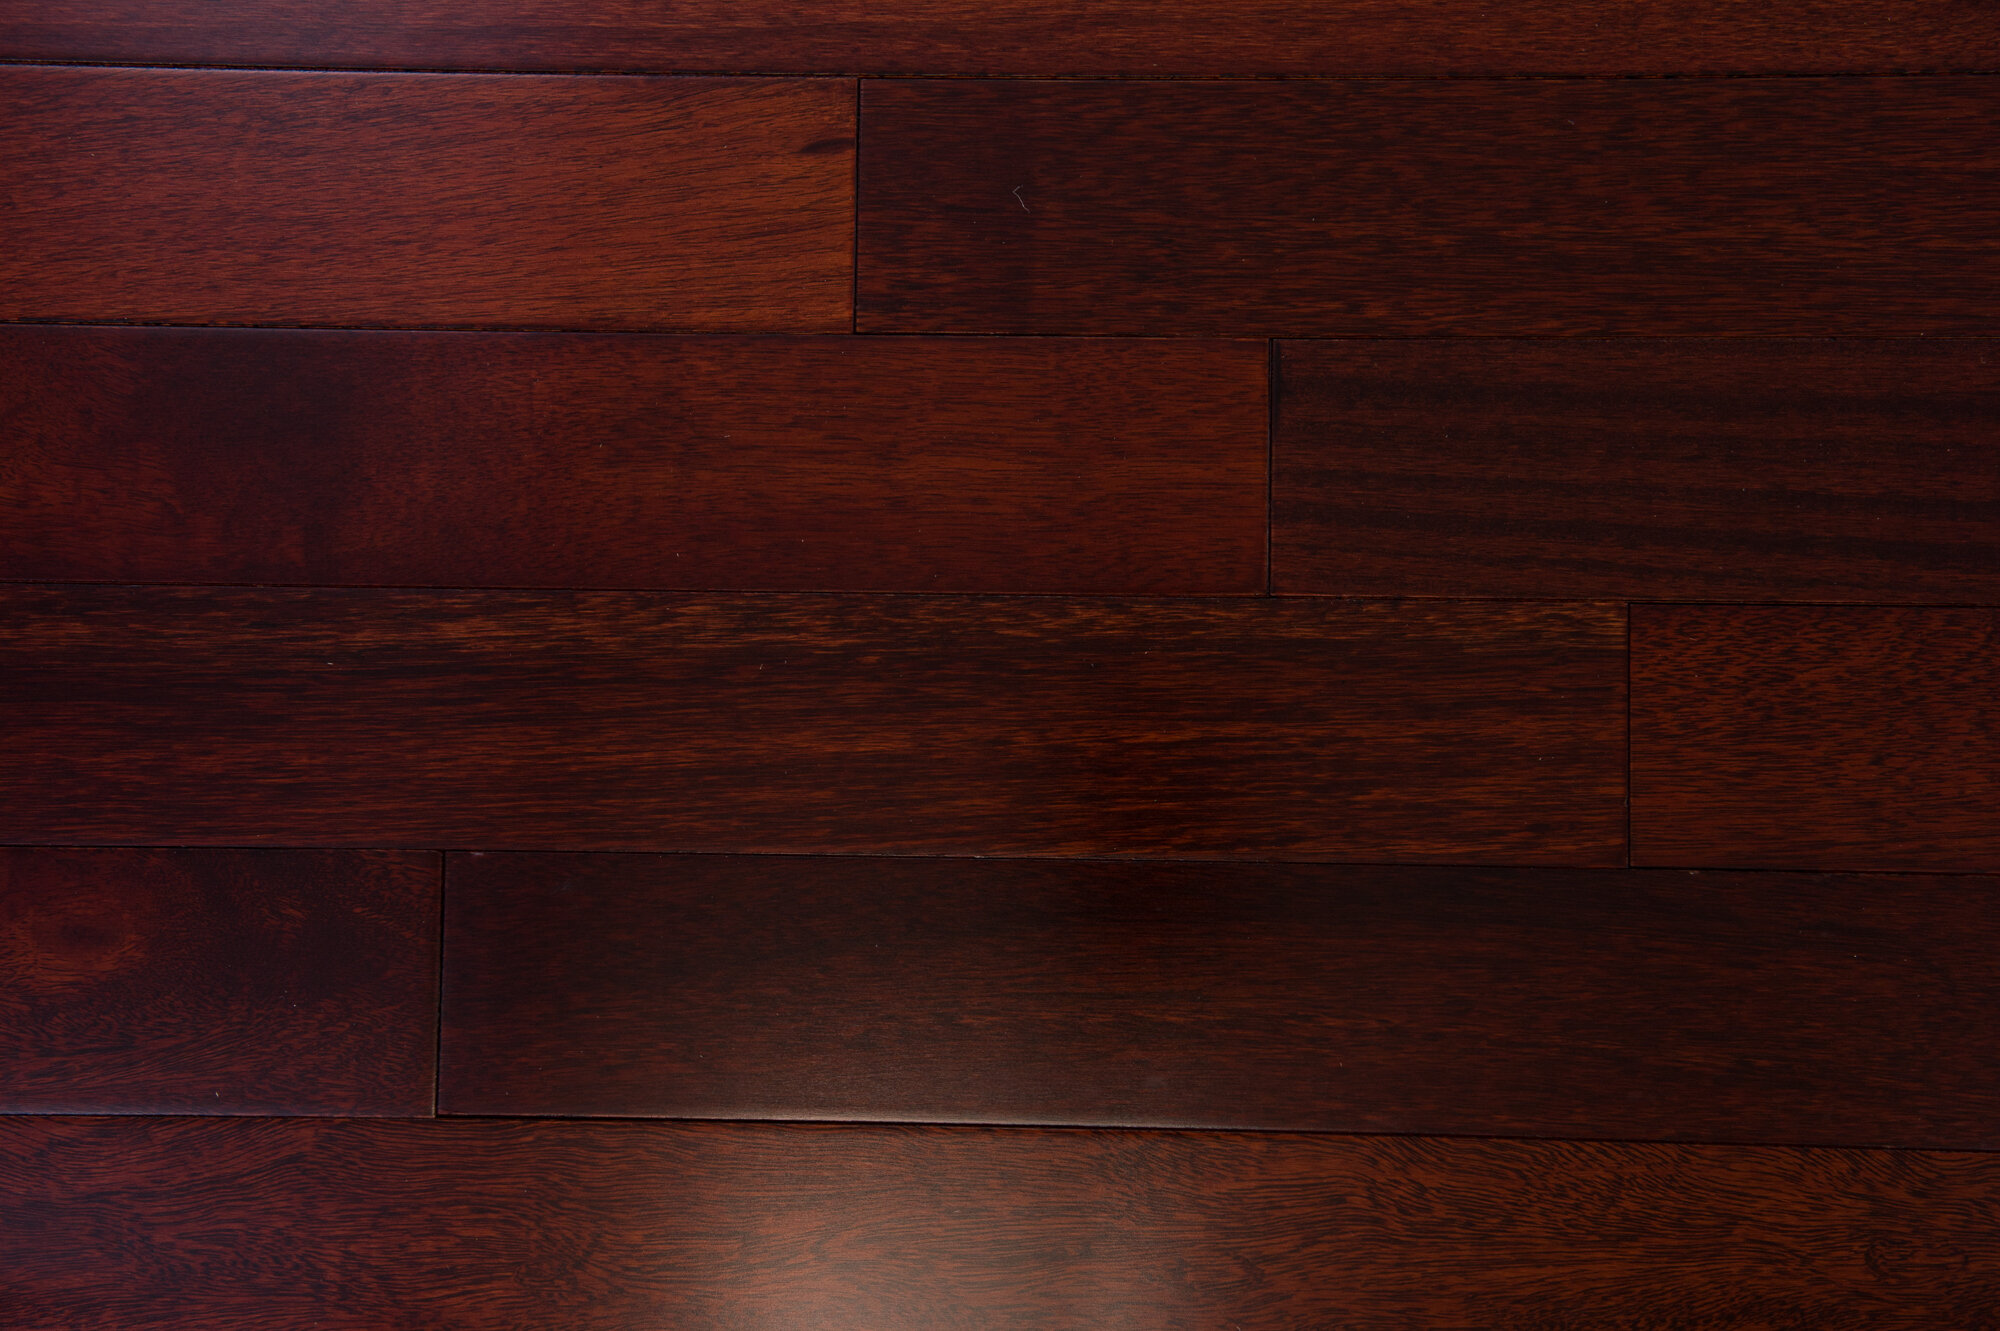 Branton Flooring Collection SAMPLE   Budapest Engineered Kempas Hardwood  Flooring In Scarlet | Wayfair